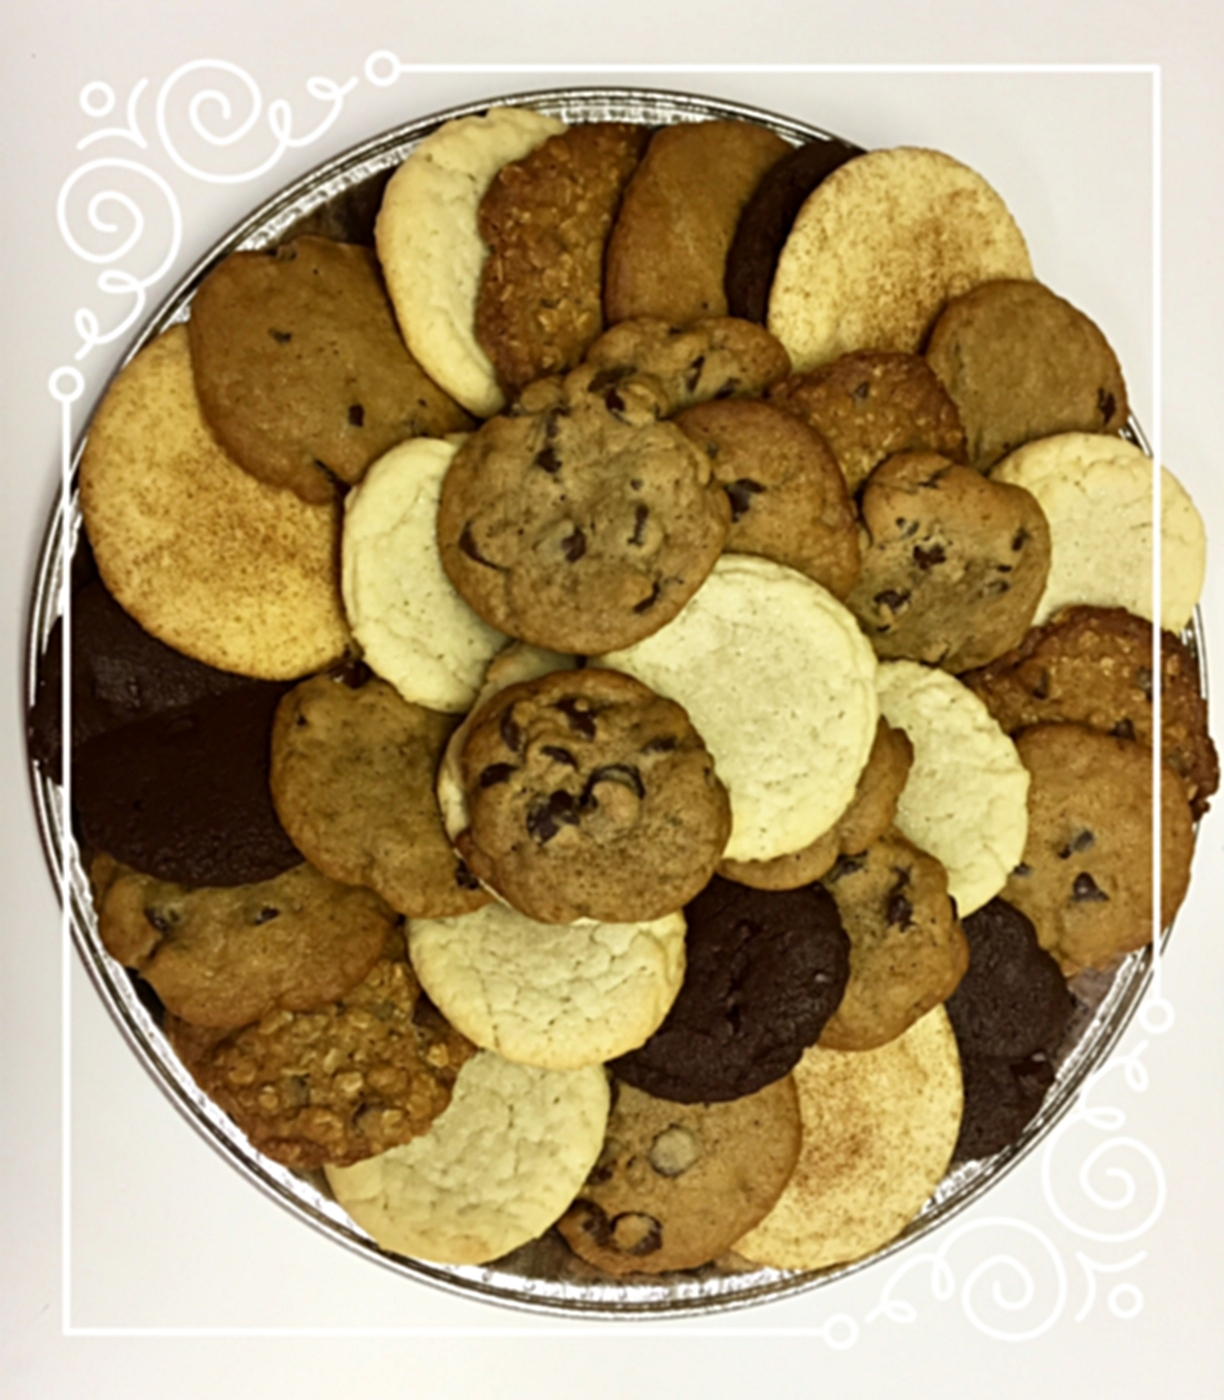 When you really need a lot of cookies... - We offer gorgeous (and of course yummy!) cookie trays that are perfect for your next meeting, party, play, dance performance, recital, study break, symposium, etc.We can also bring over lots of milk to go with all those cookies. Just let us know.Large orders can be delivered any time from 10 am until 12 am. Please give us at least 24 hours to create orders of over 25 cookies.To order or to discuss pricing for large orders, either click here, send us an email here, or give us a call at 603-COO-KIES. To order online, click here.If you are ordering for a non-profit organization, please put your tax id number in the comments section and order from the non-profit organization selections.Enjoy!